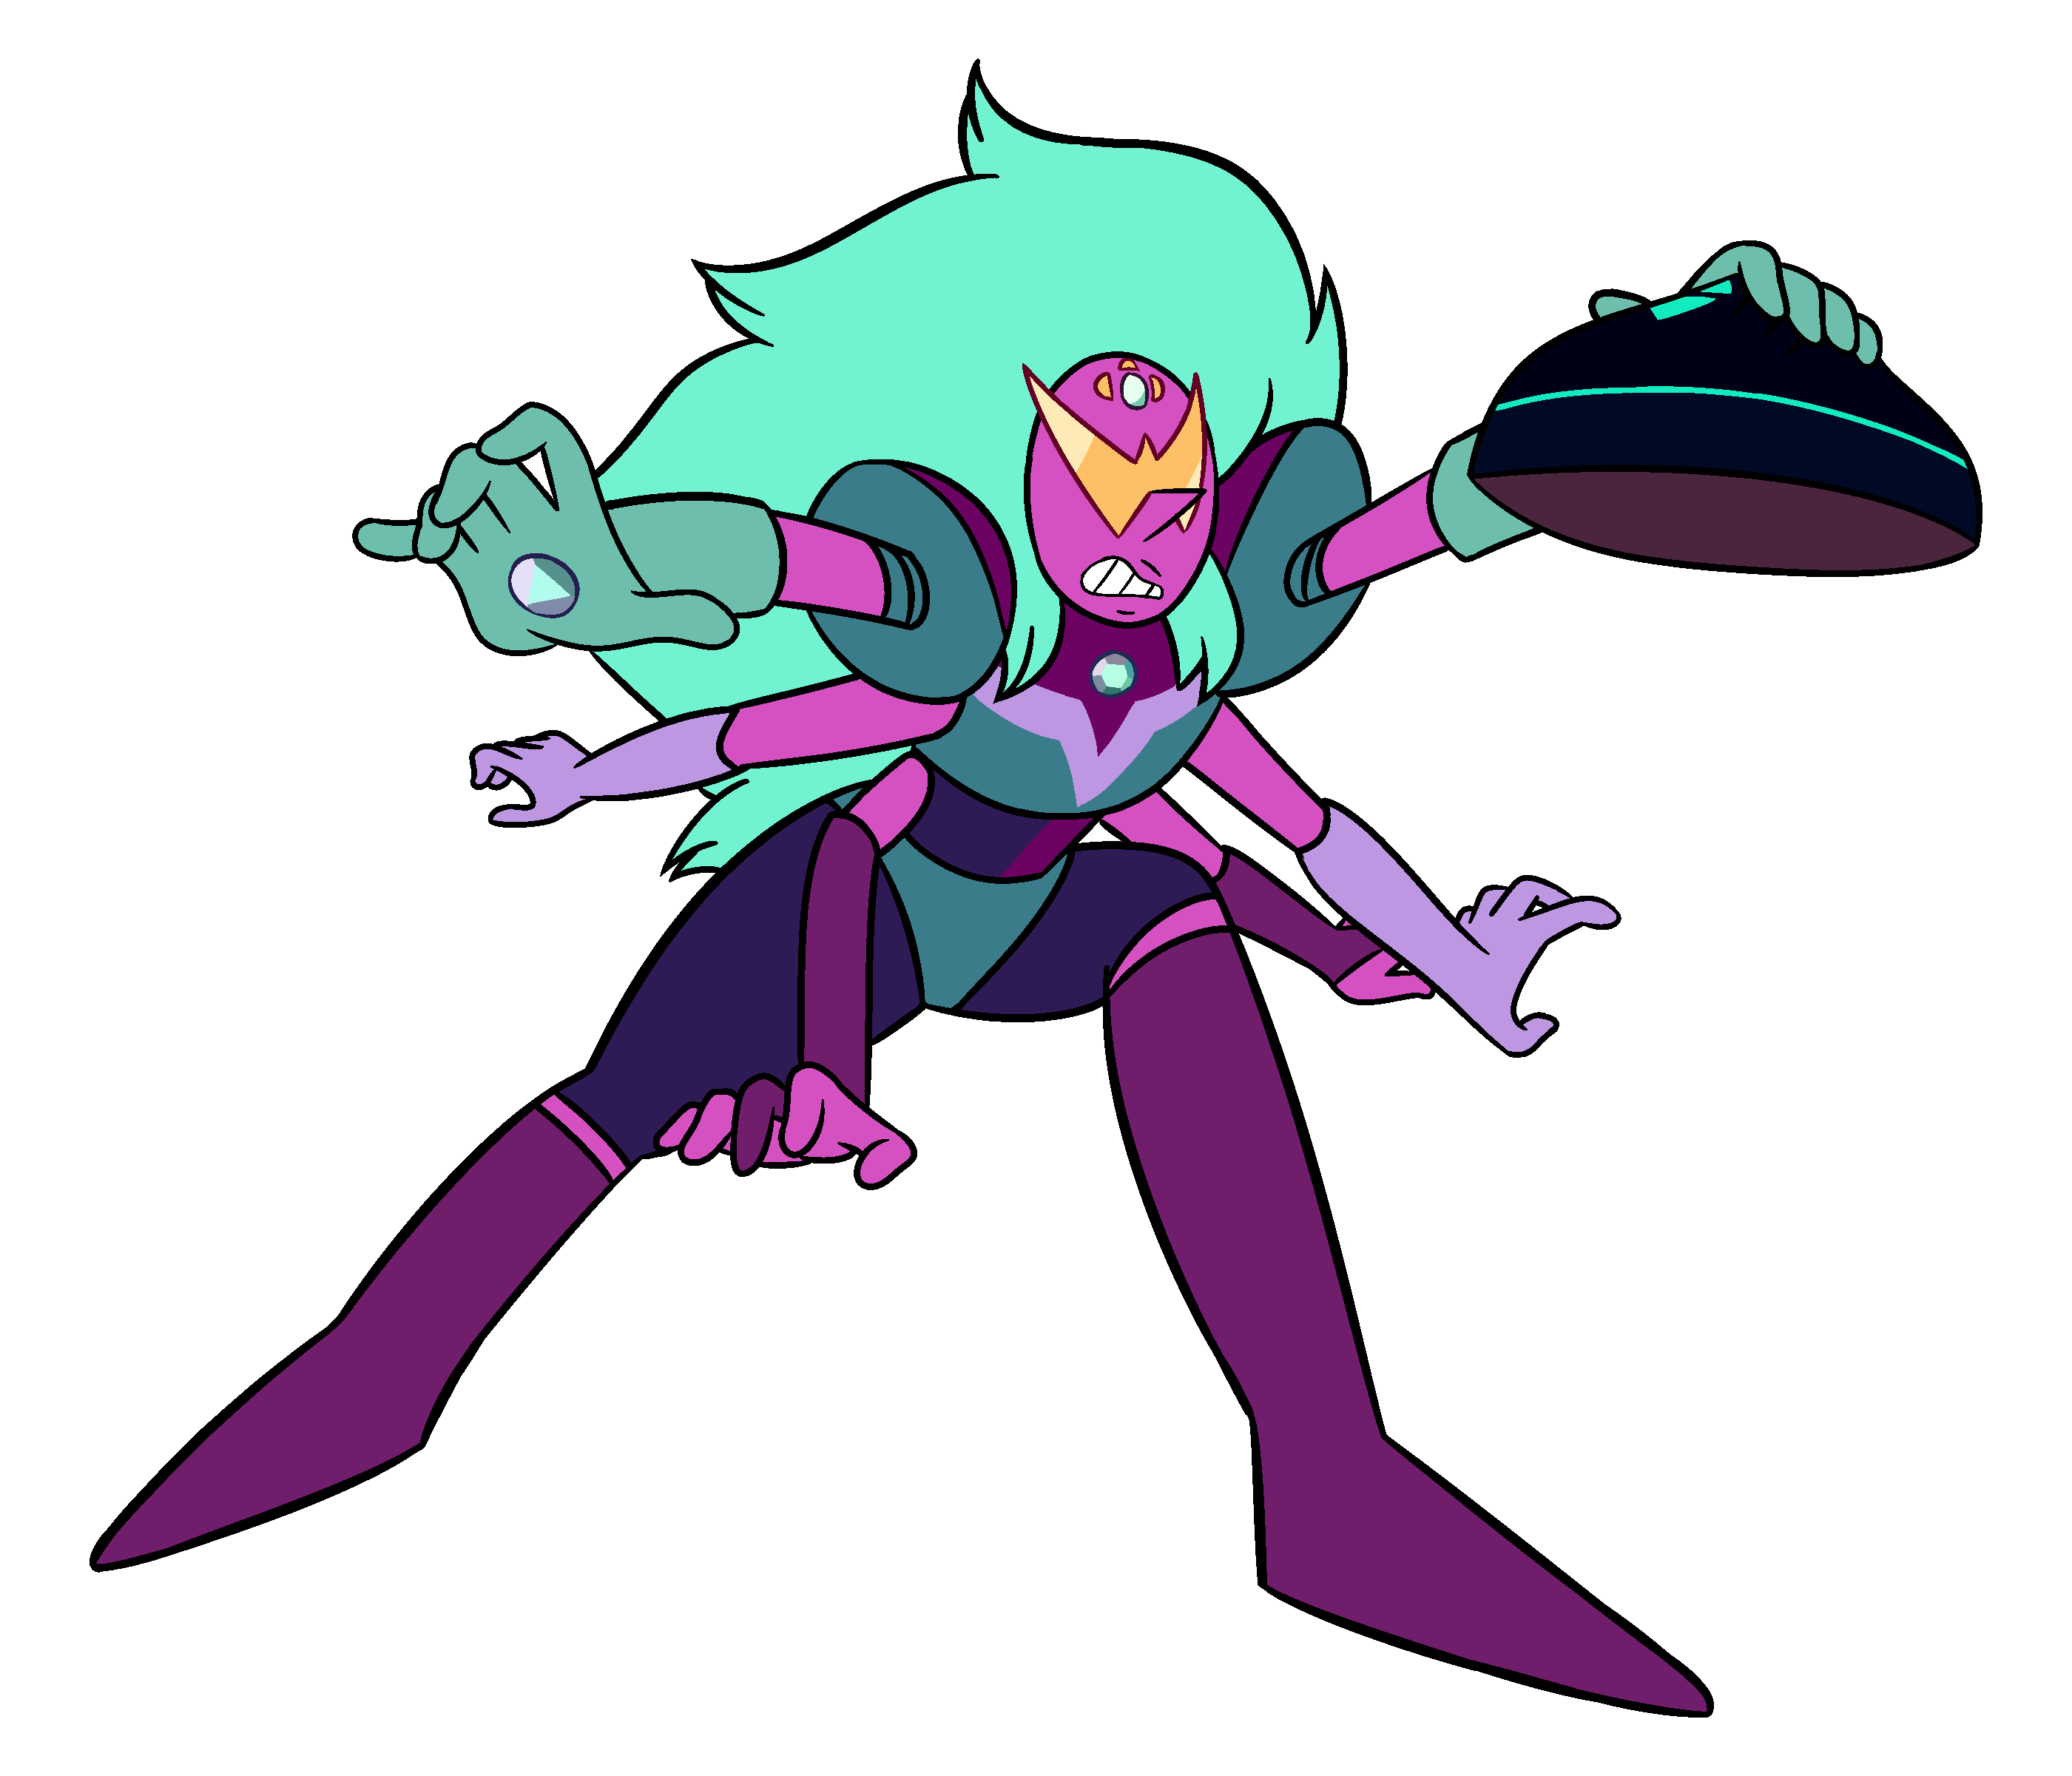 Alexandrite IAMM 253 Redraw With Aquamarine's Ship